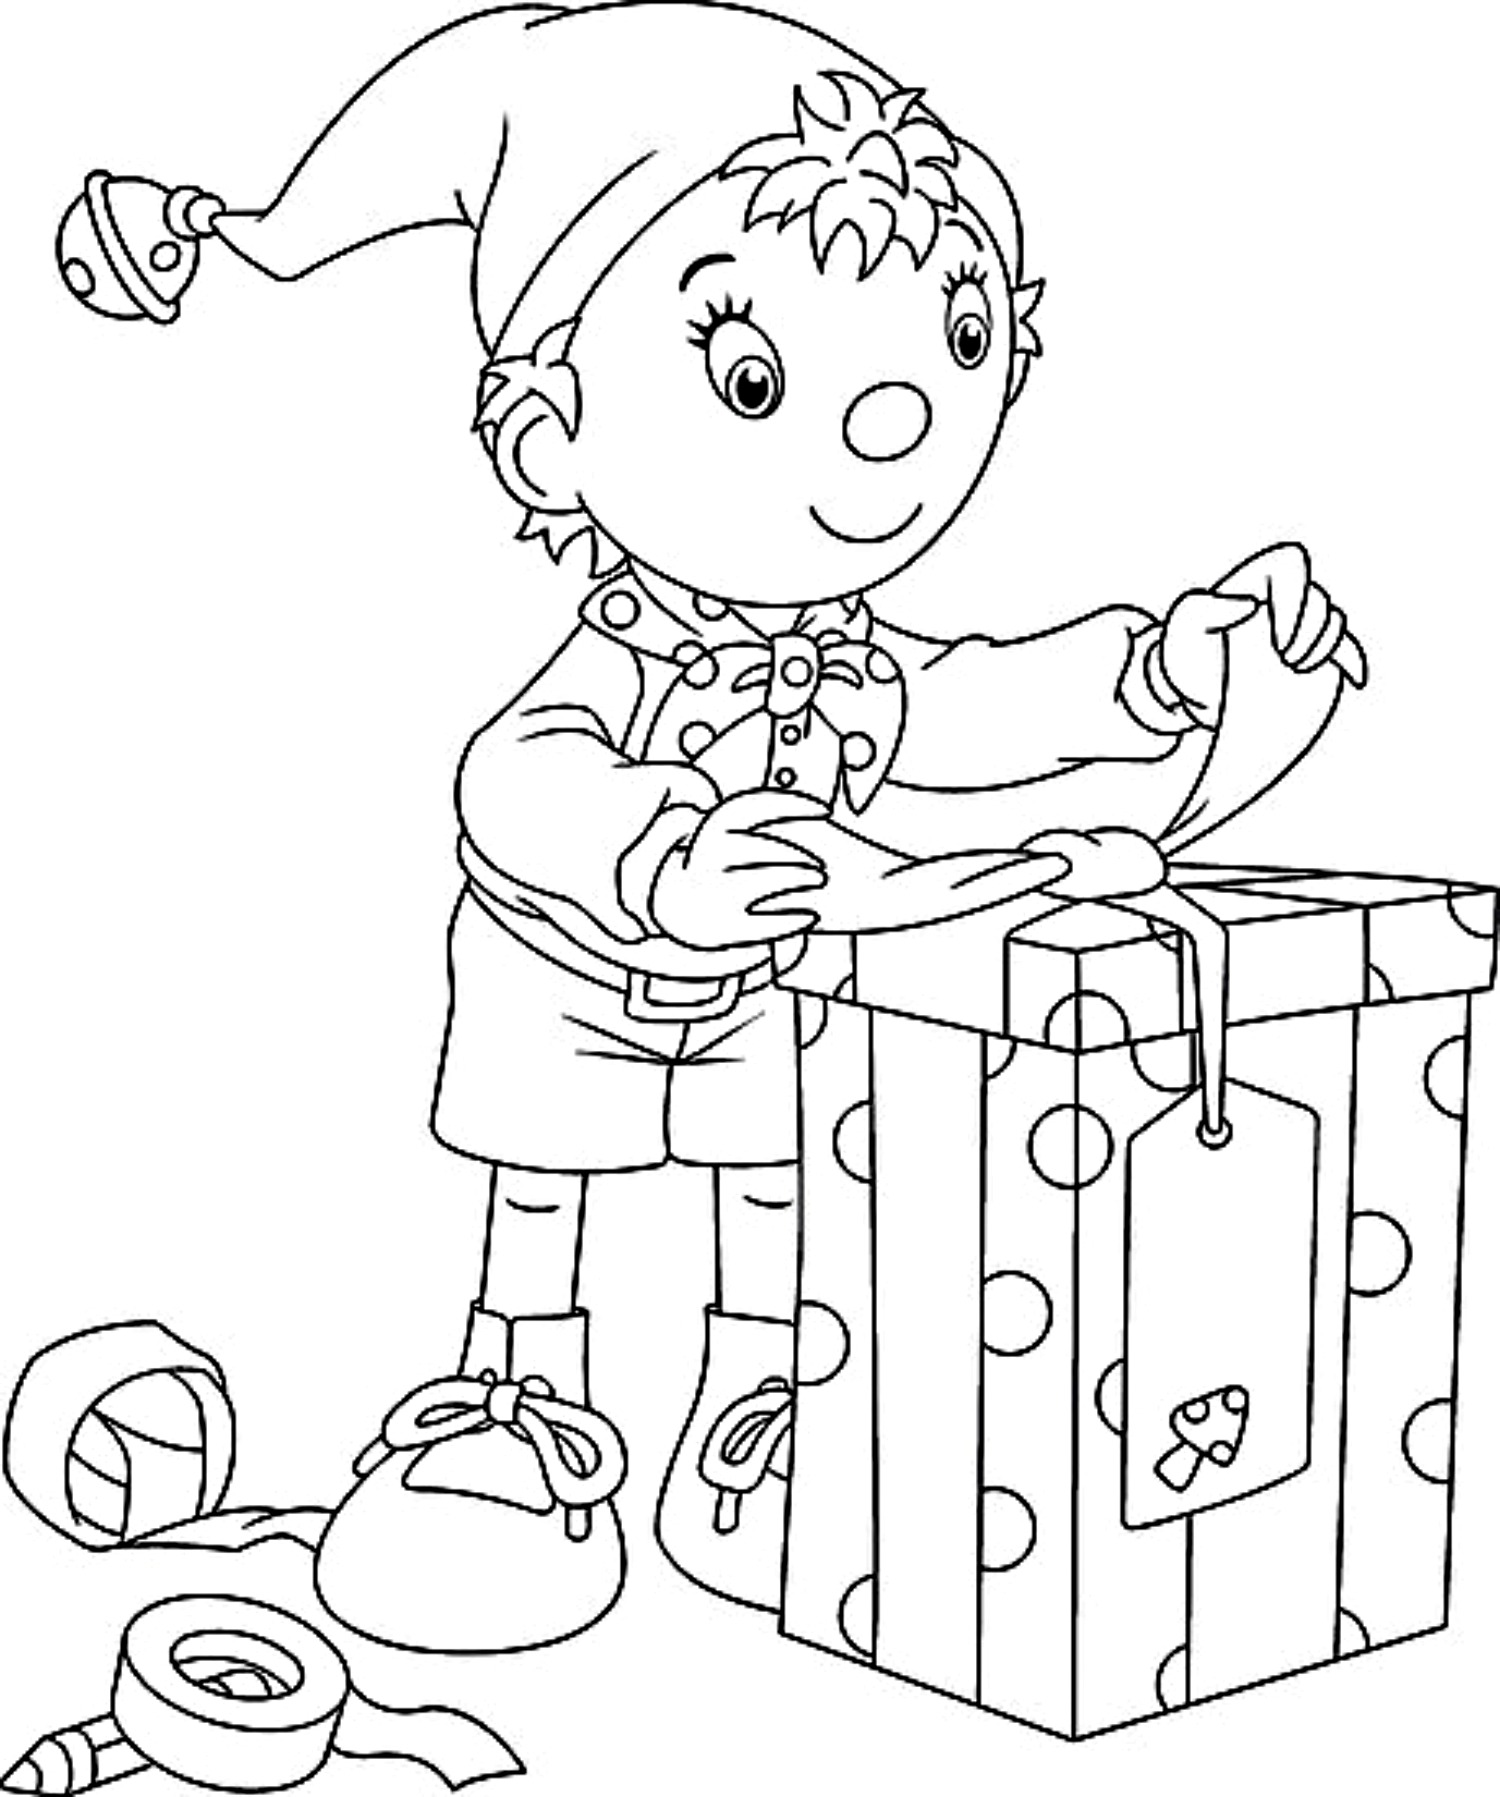 Christmas Coloring Worksheets Kindergarten With Free Printable Pages For Kids